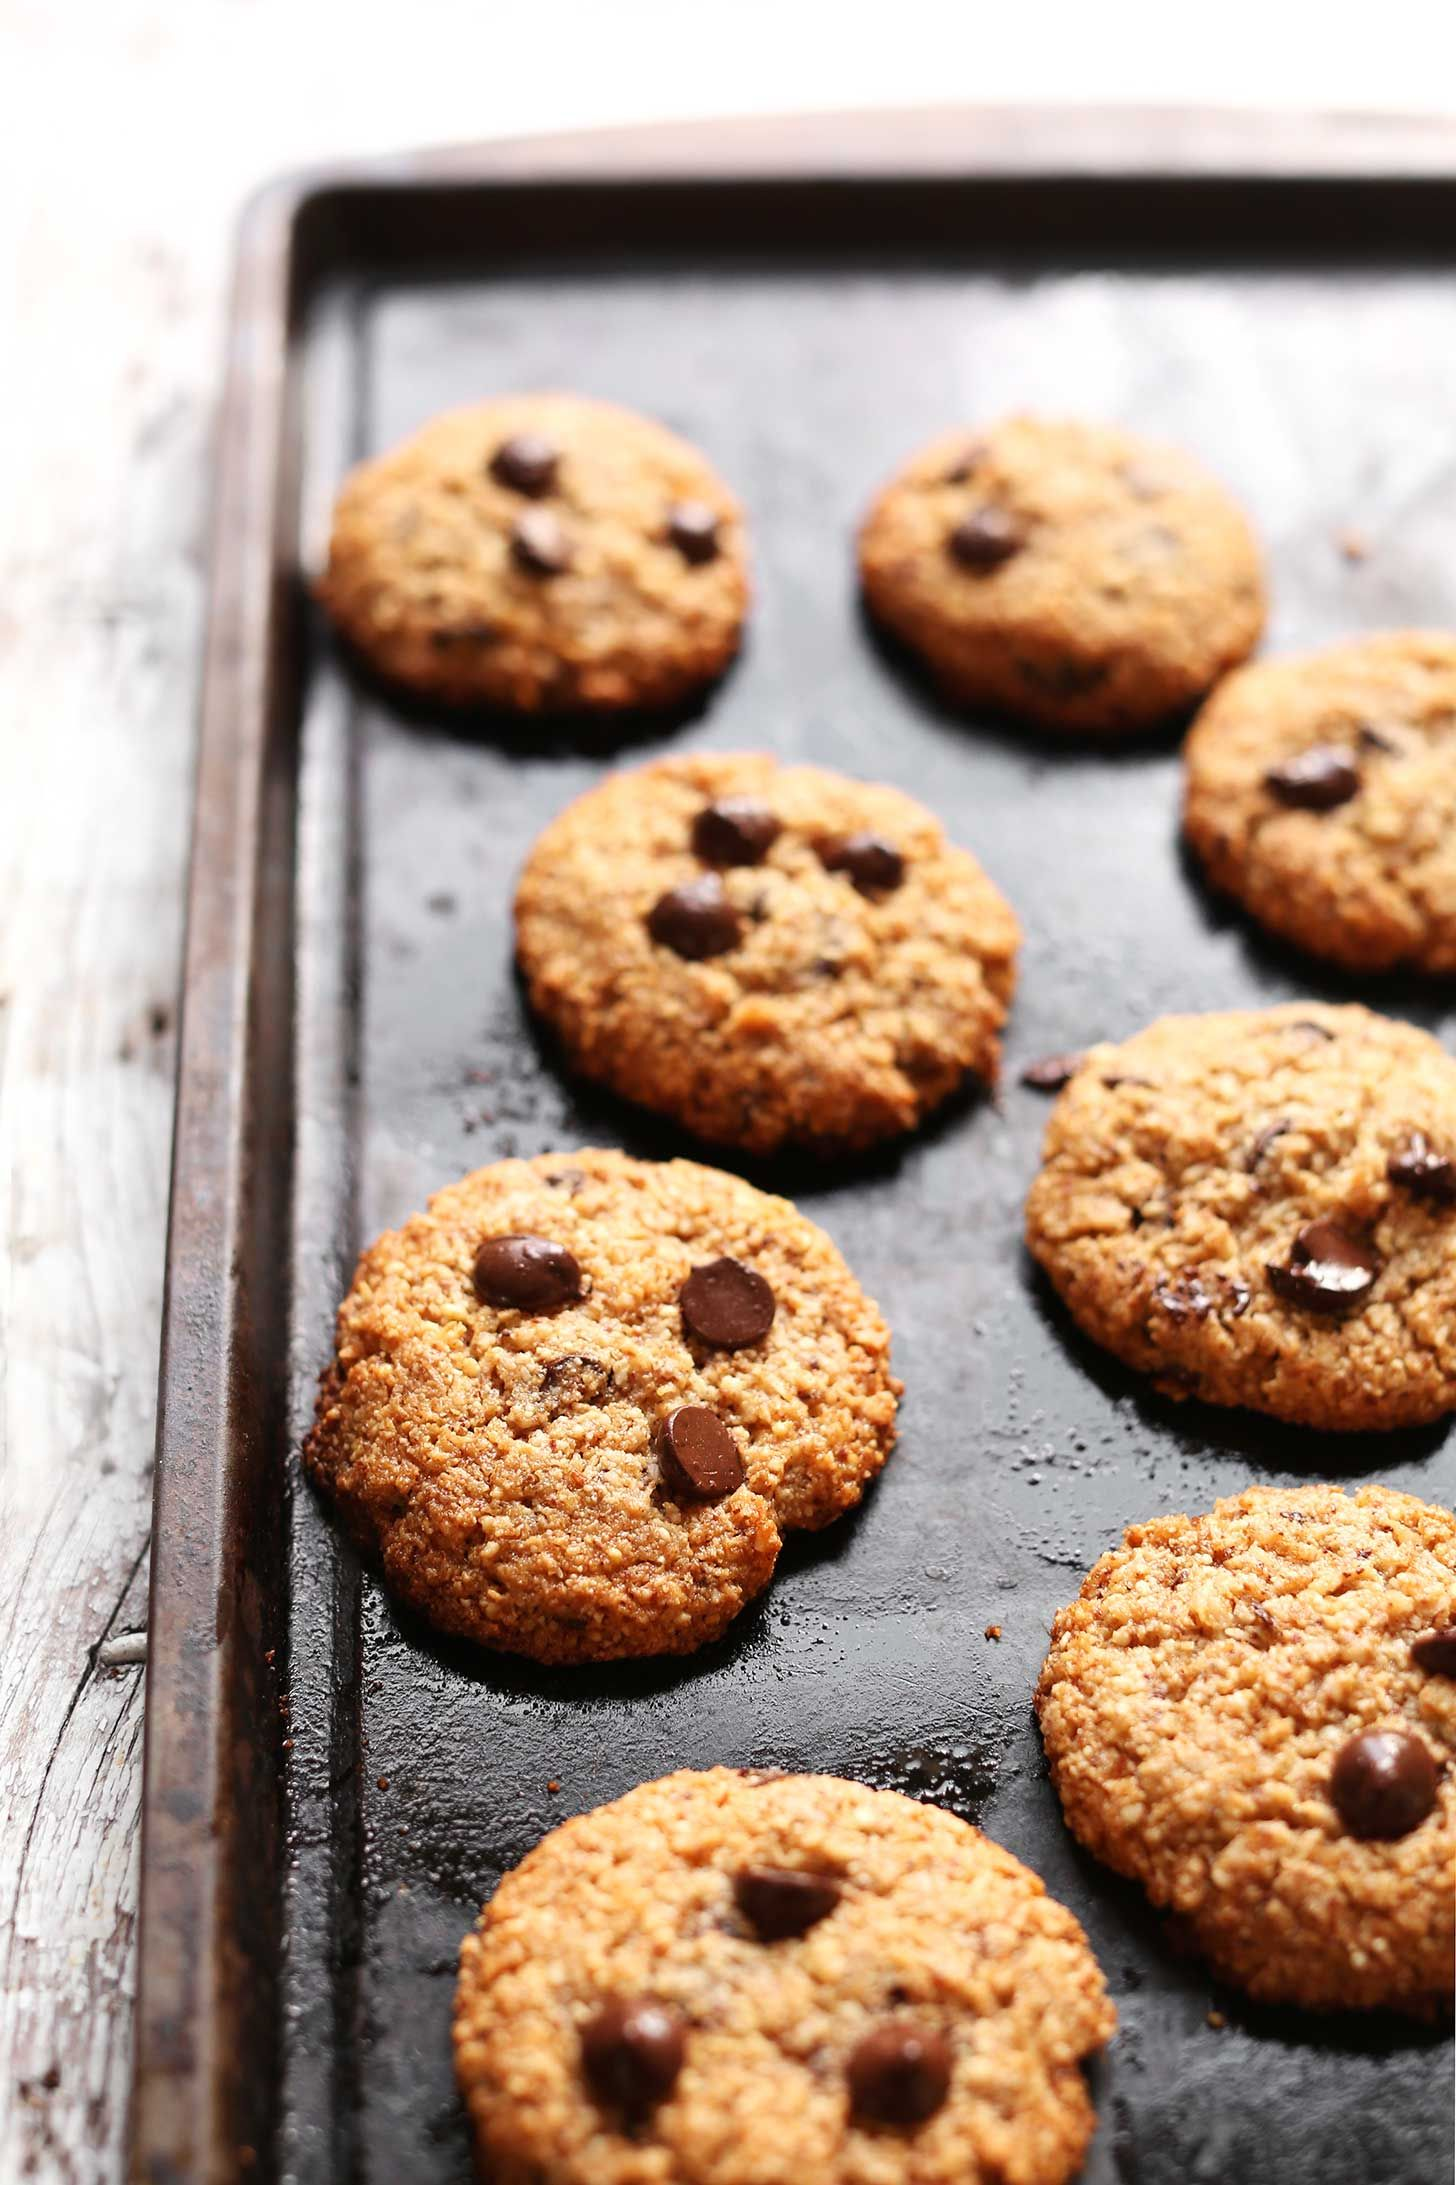 The Best Almond Meal Chocolate Chip Cookies Vegan Gf